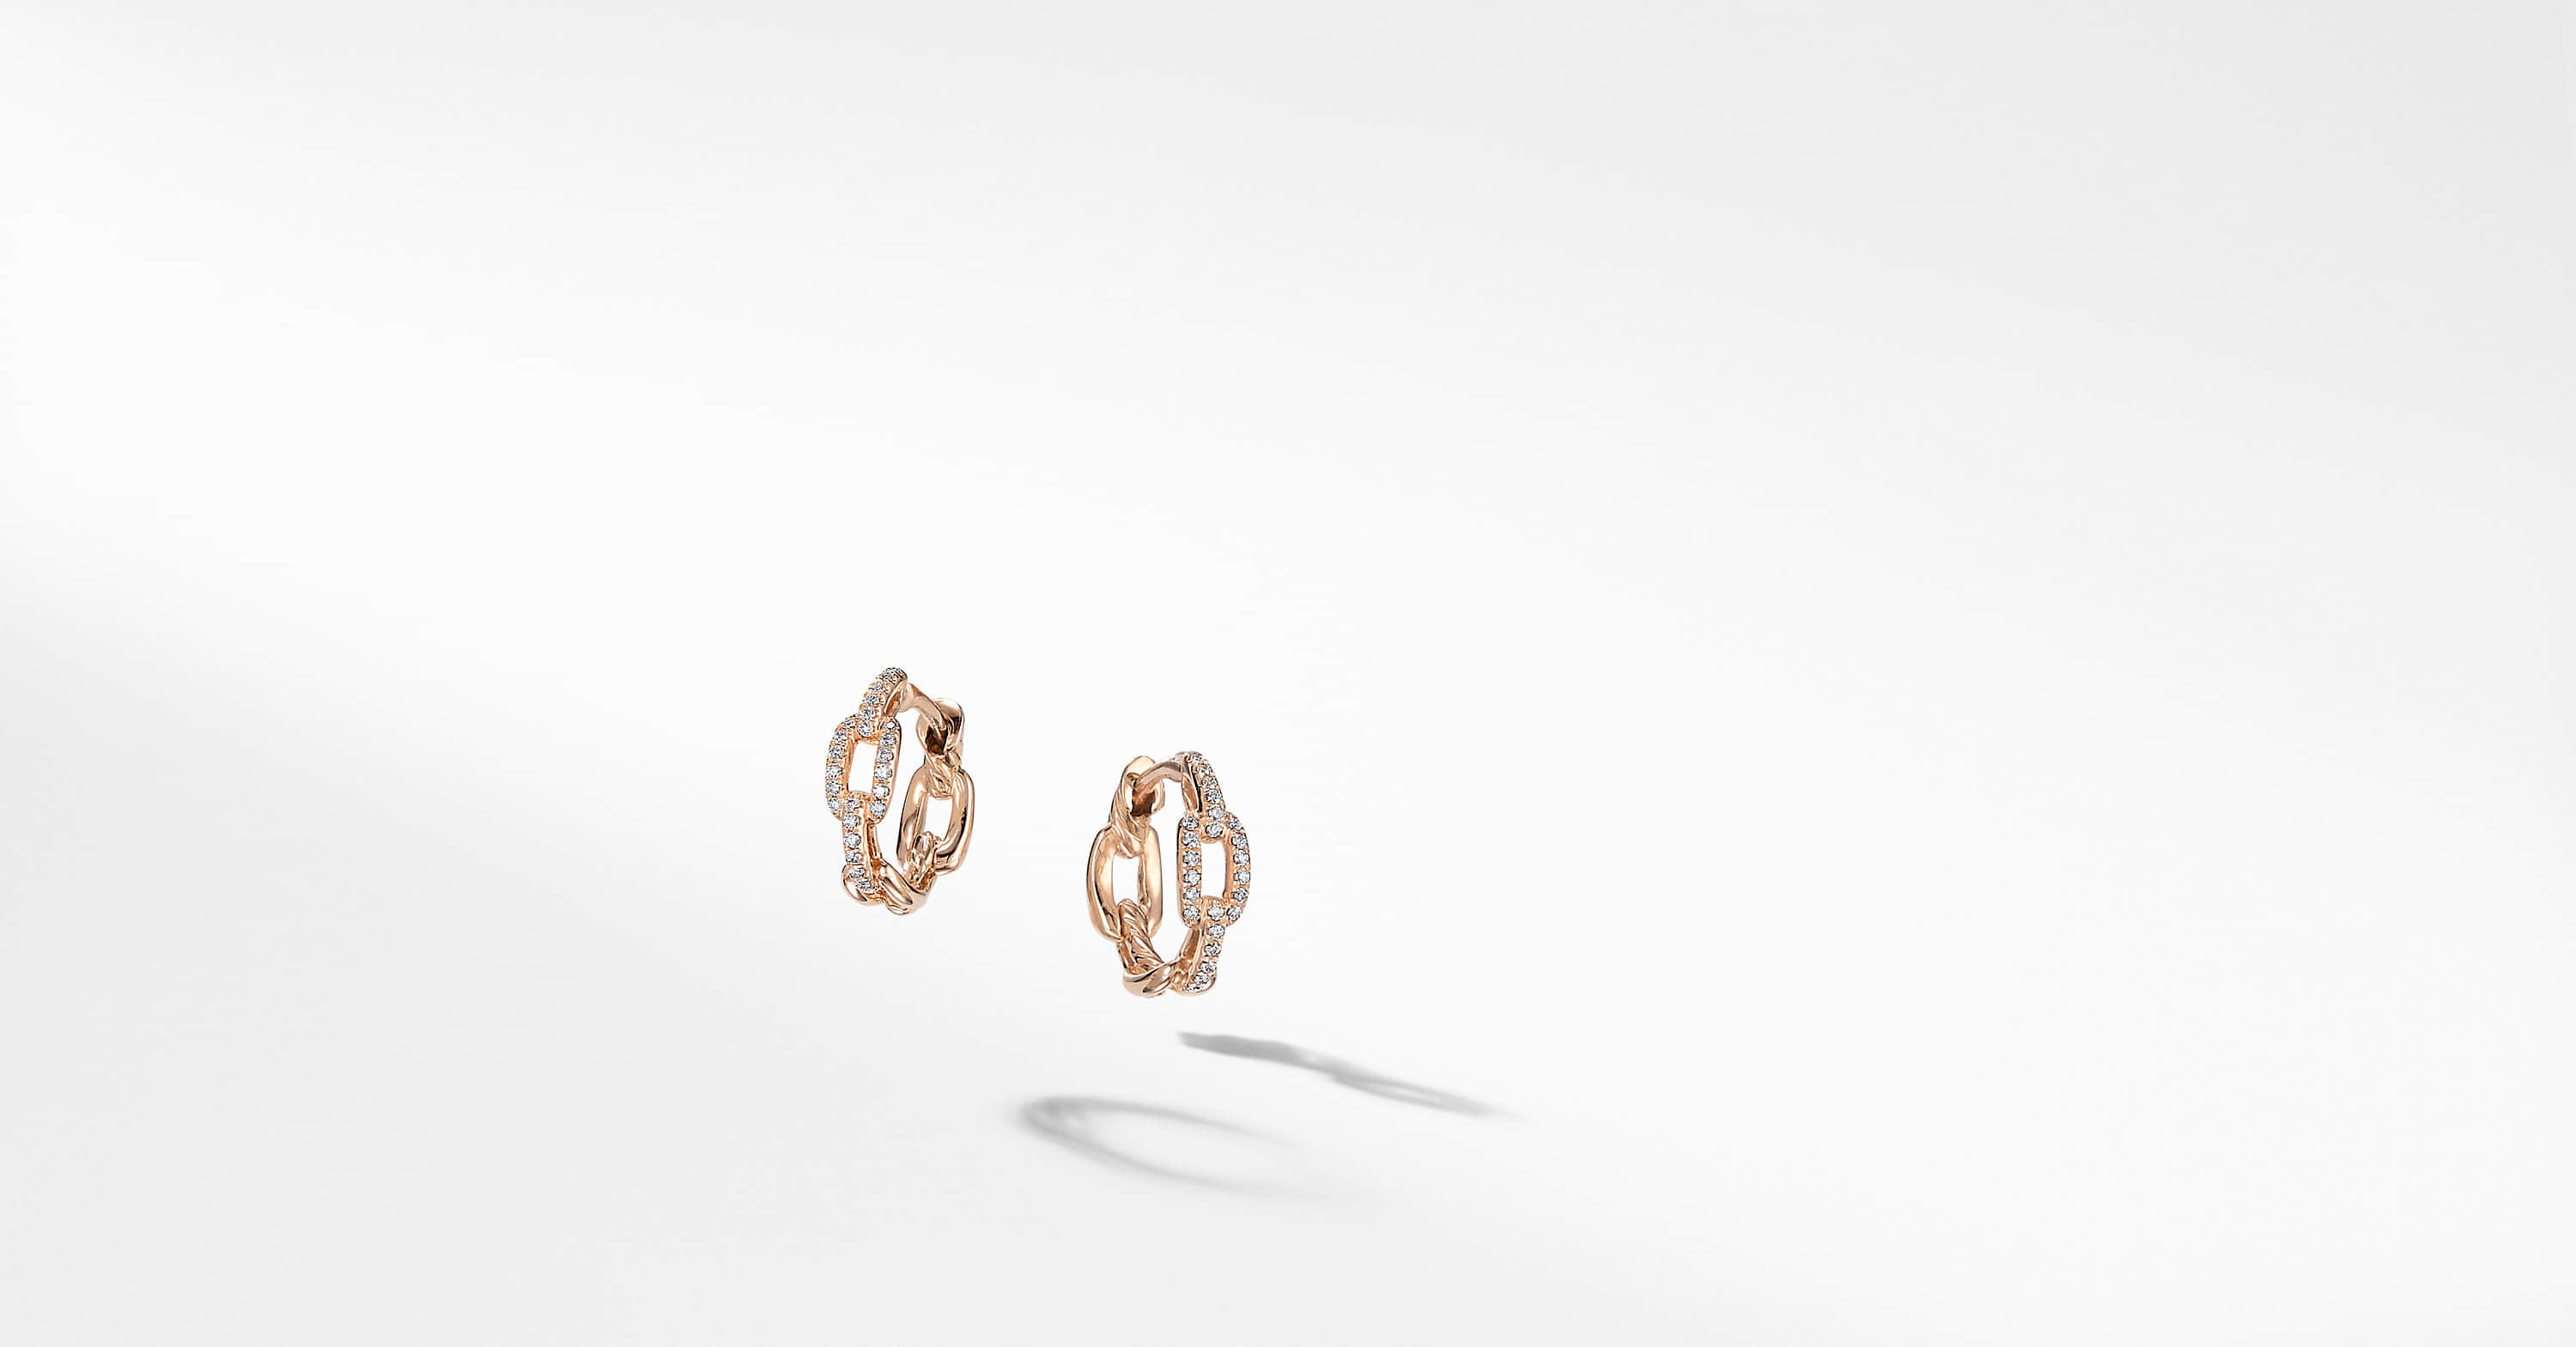 Stax Chain Link Huggie Hoop Earrings with Diamonds in 18K Rose Gold